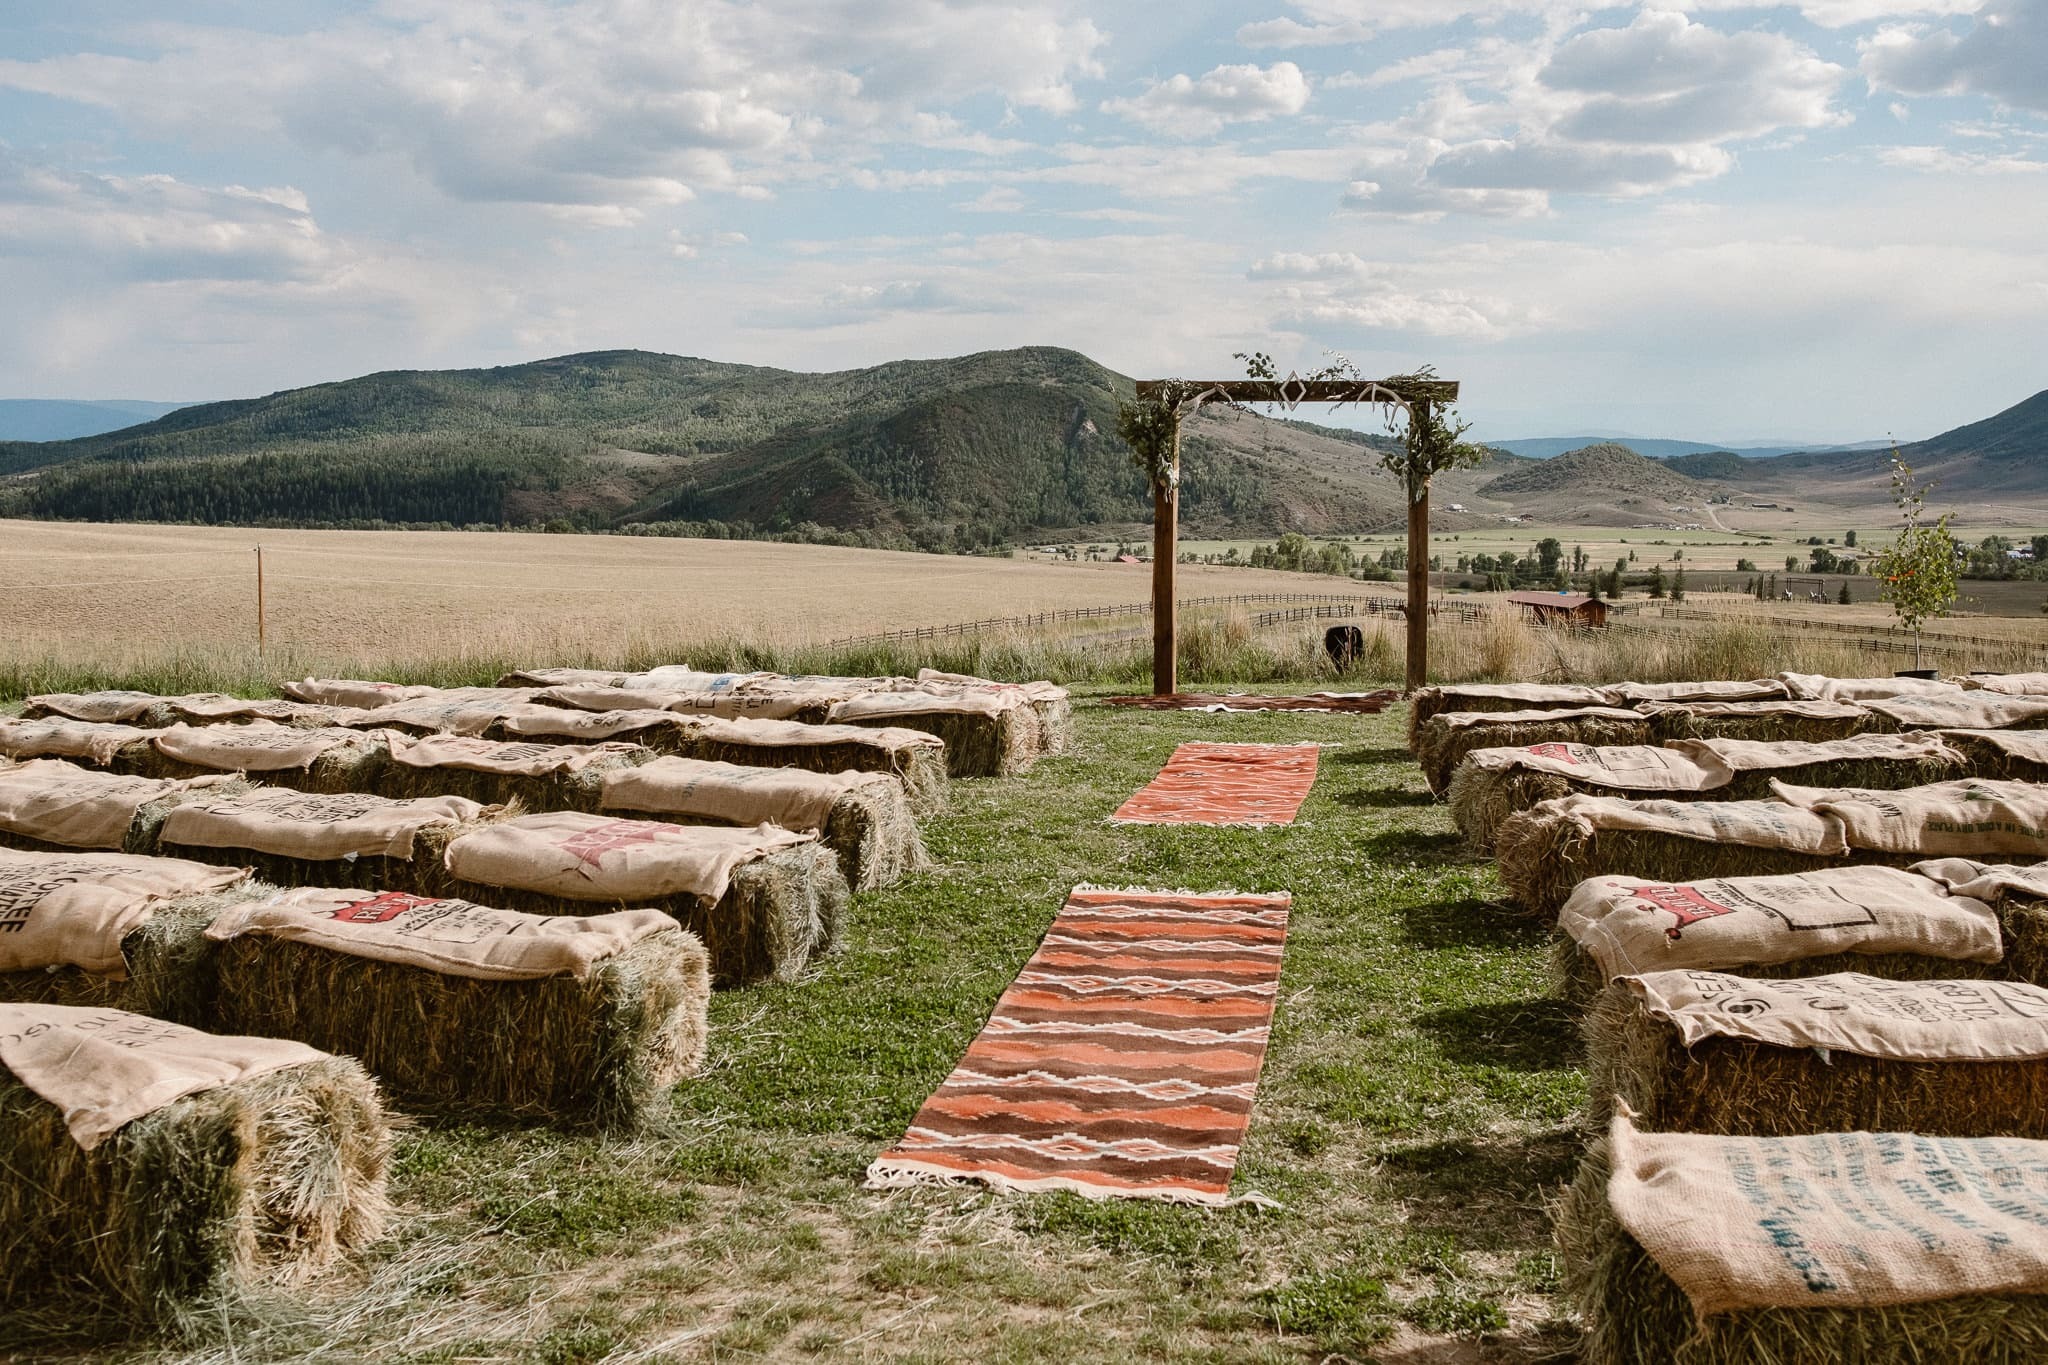 Steamboat Springs wedding photographer, La Joya Dulce wedding, Colorado ranch wedding venues, ceremony site with mountain views, wedding ceremony with hay bales, ceremony aisle with rugs